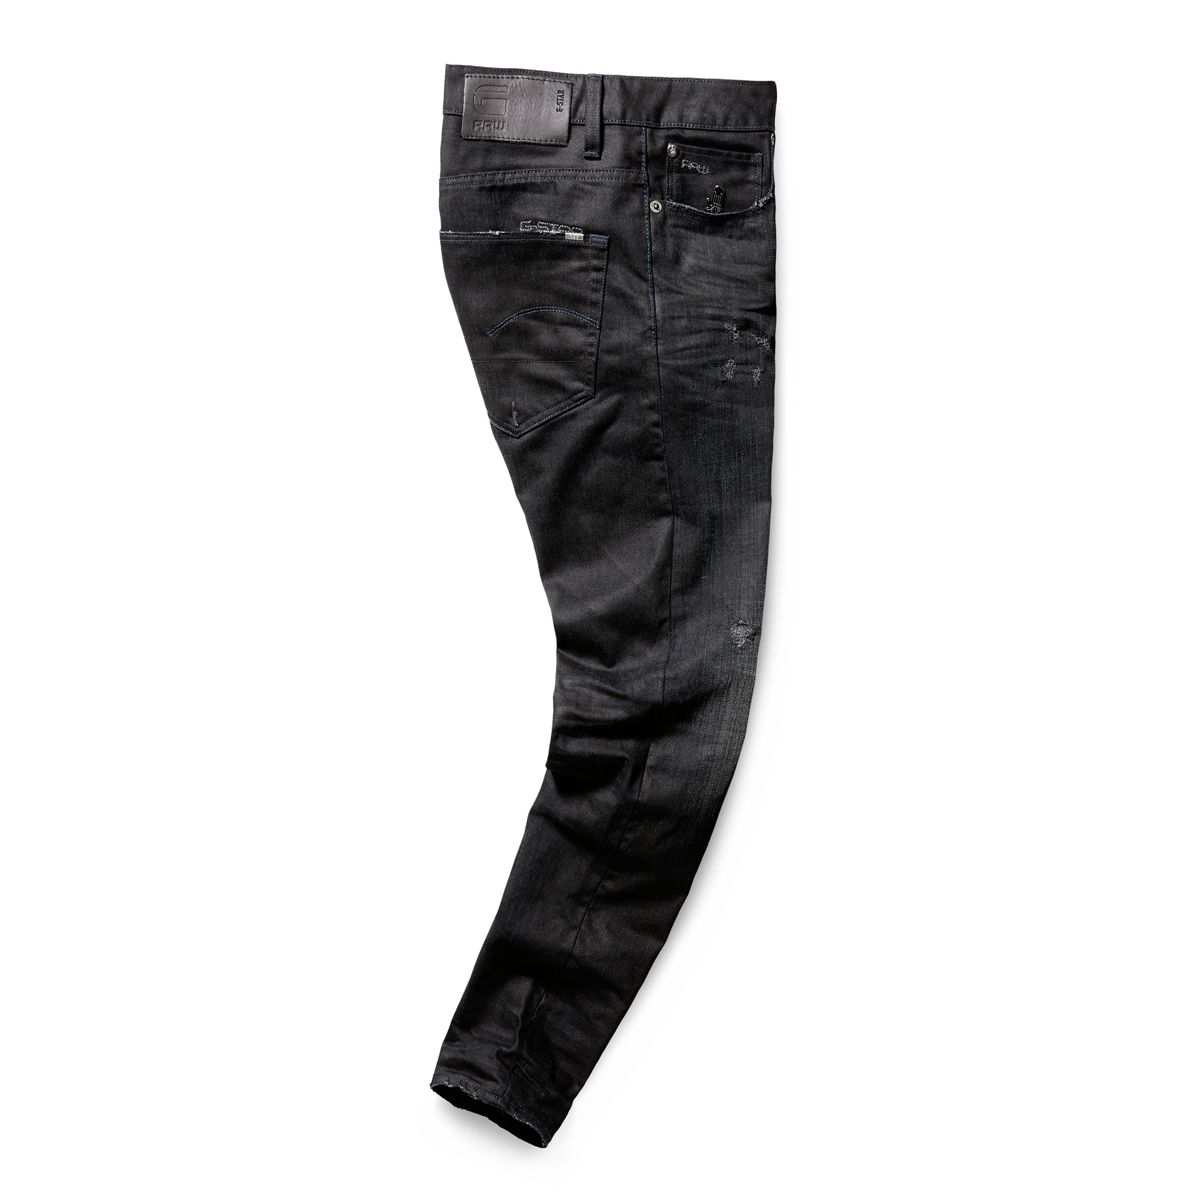 2d23f077d8b Occotis 3301 Slim Jeans #rawfortheoceans Raw Clothing, Man Clothes, Denim  Branding, G